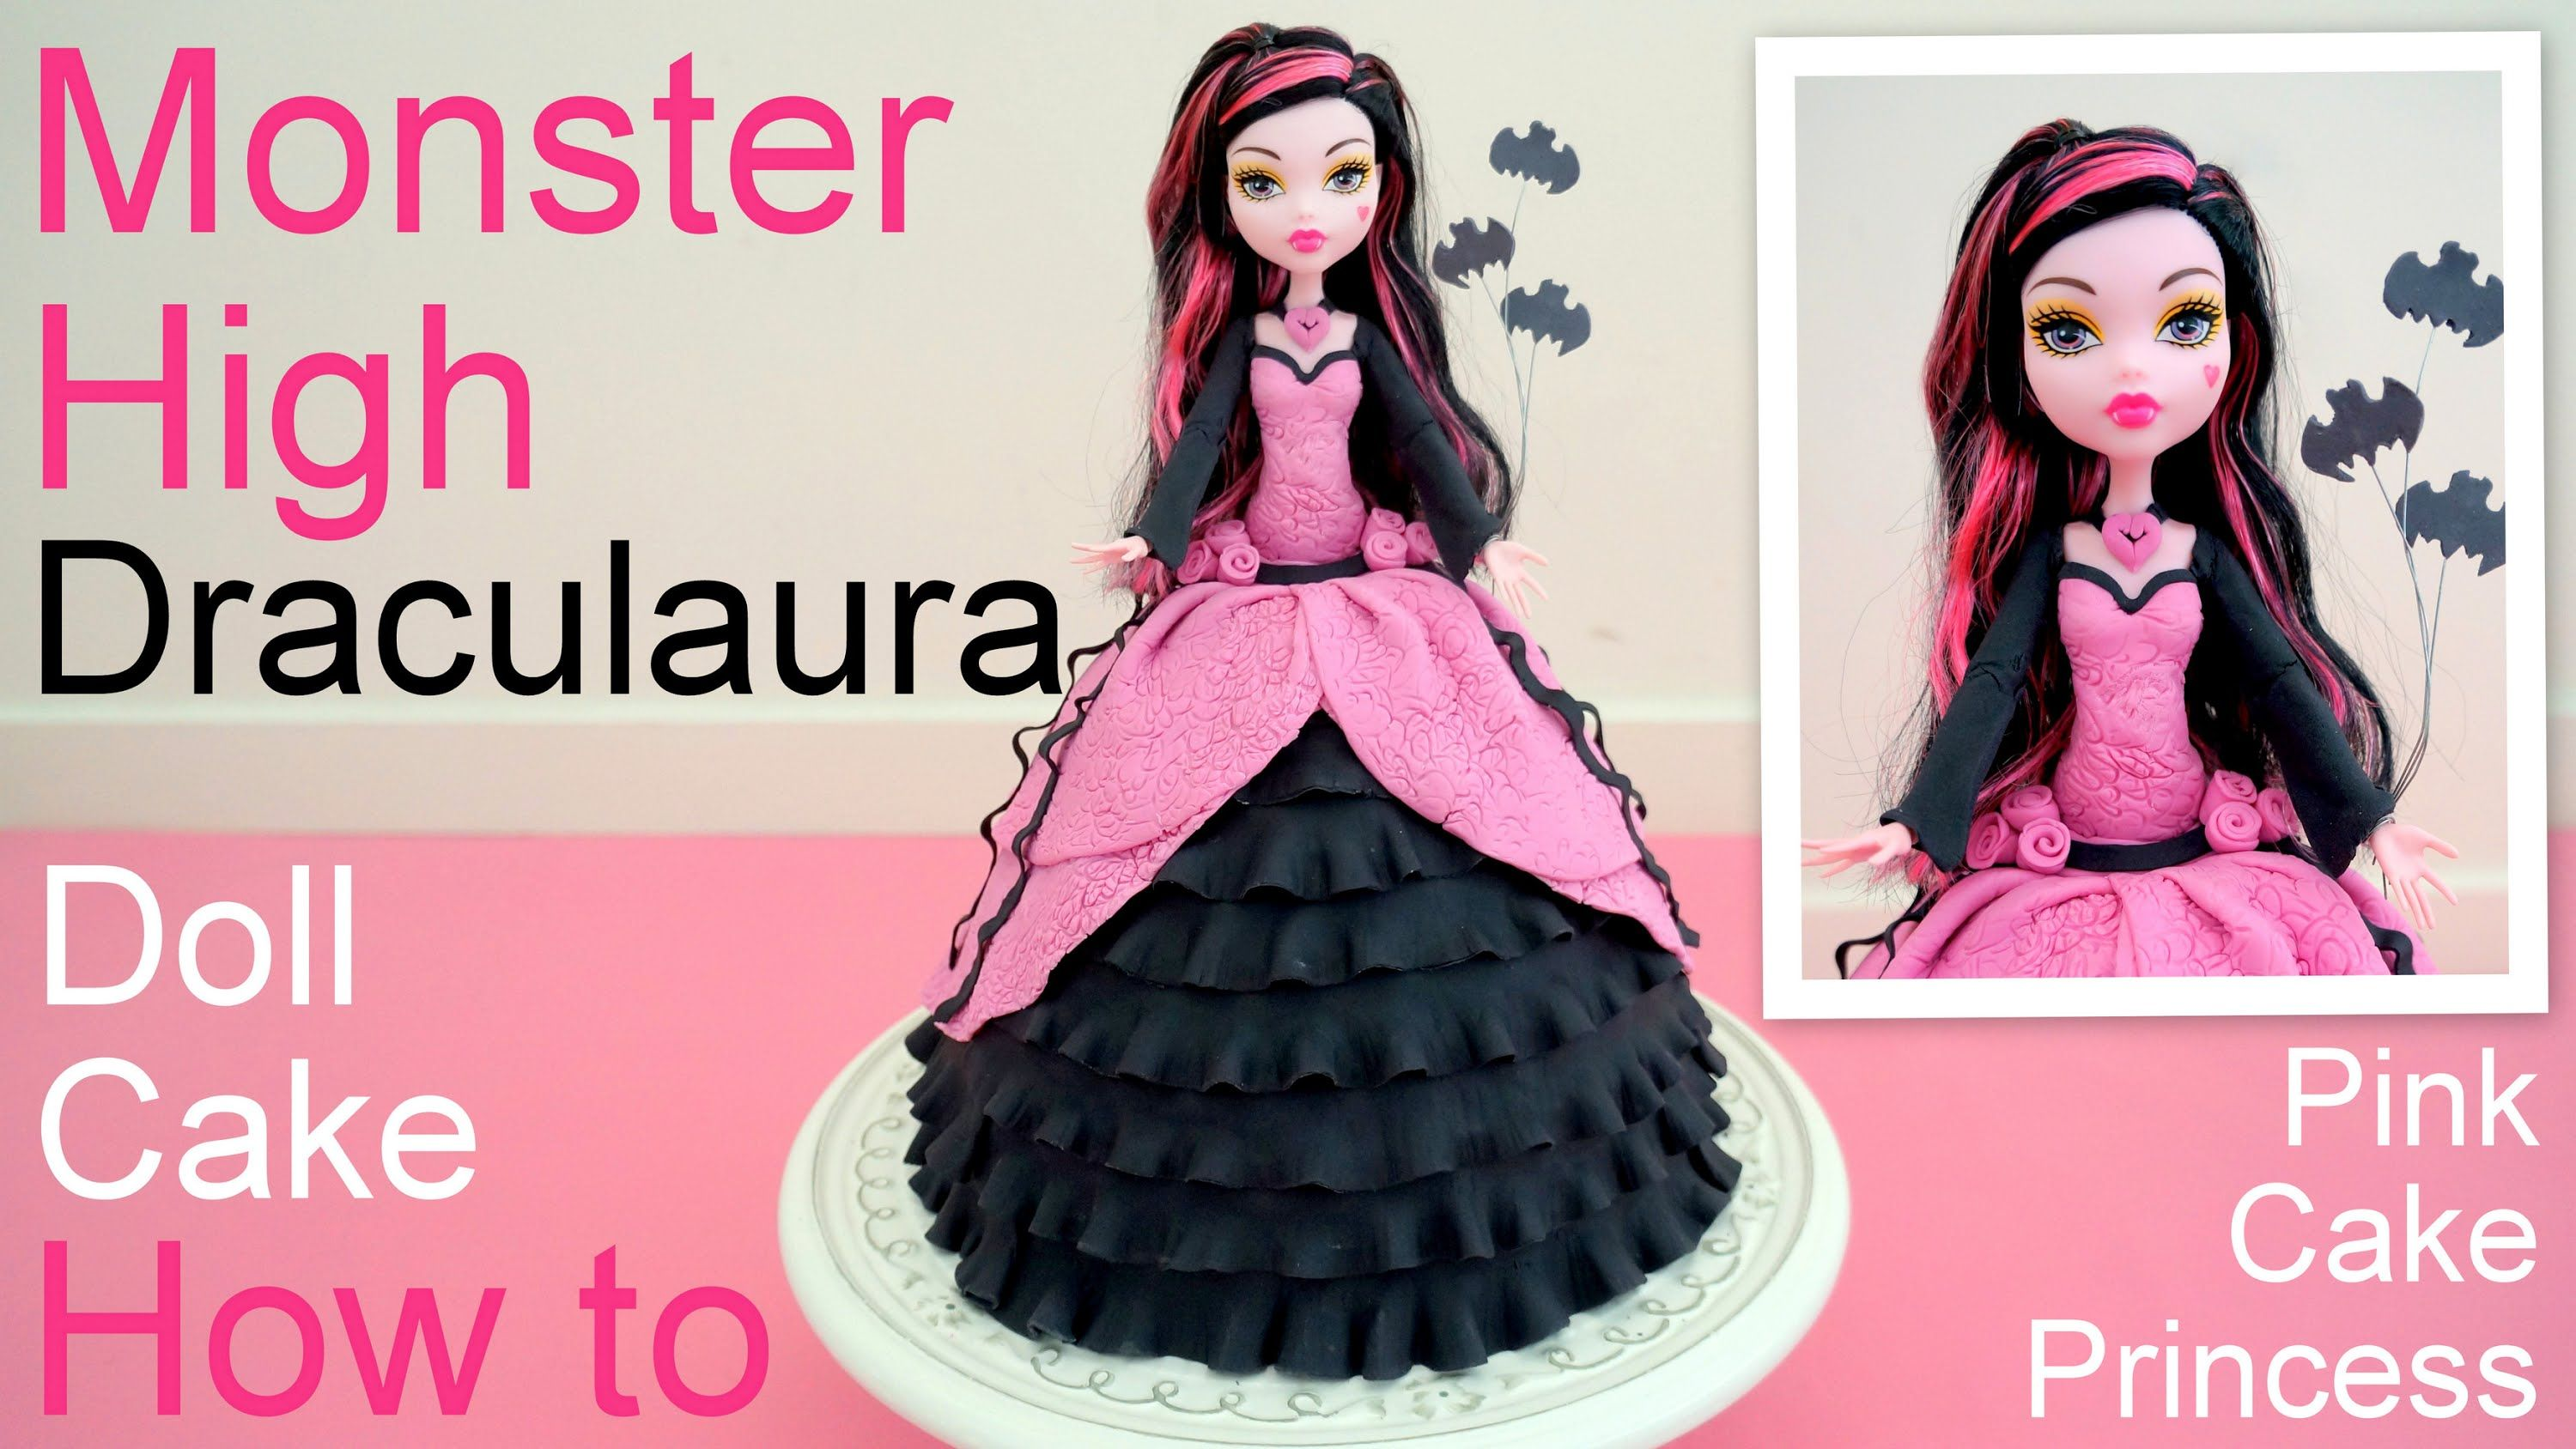 Halloween Monster High Draculaura Doll Cake How To By Pink Cake